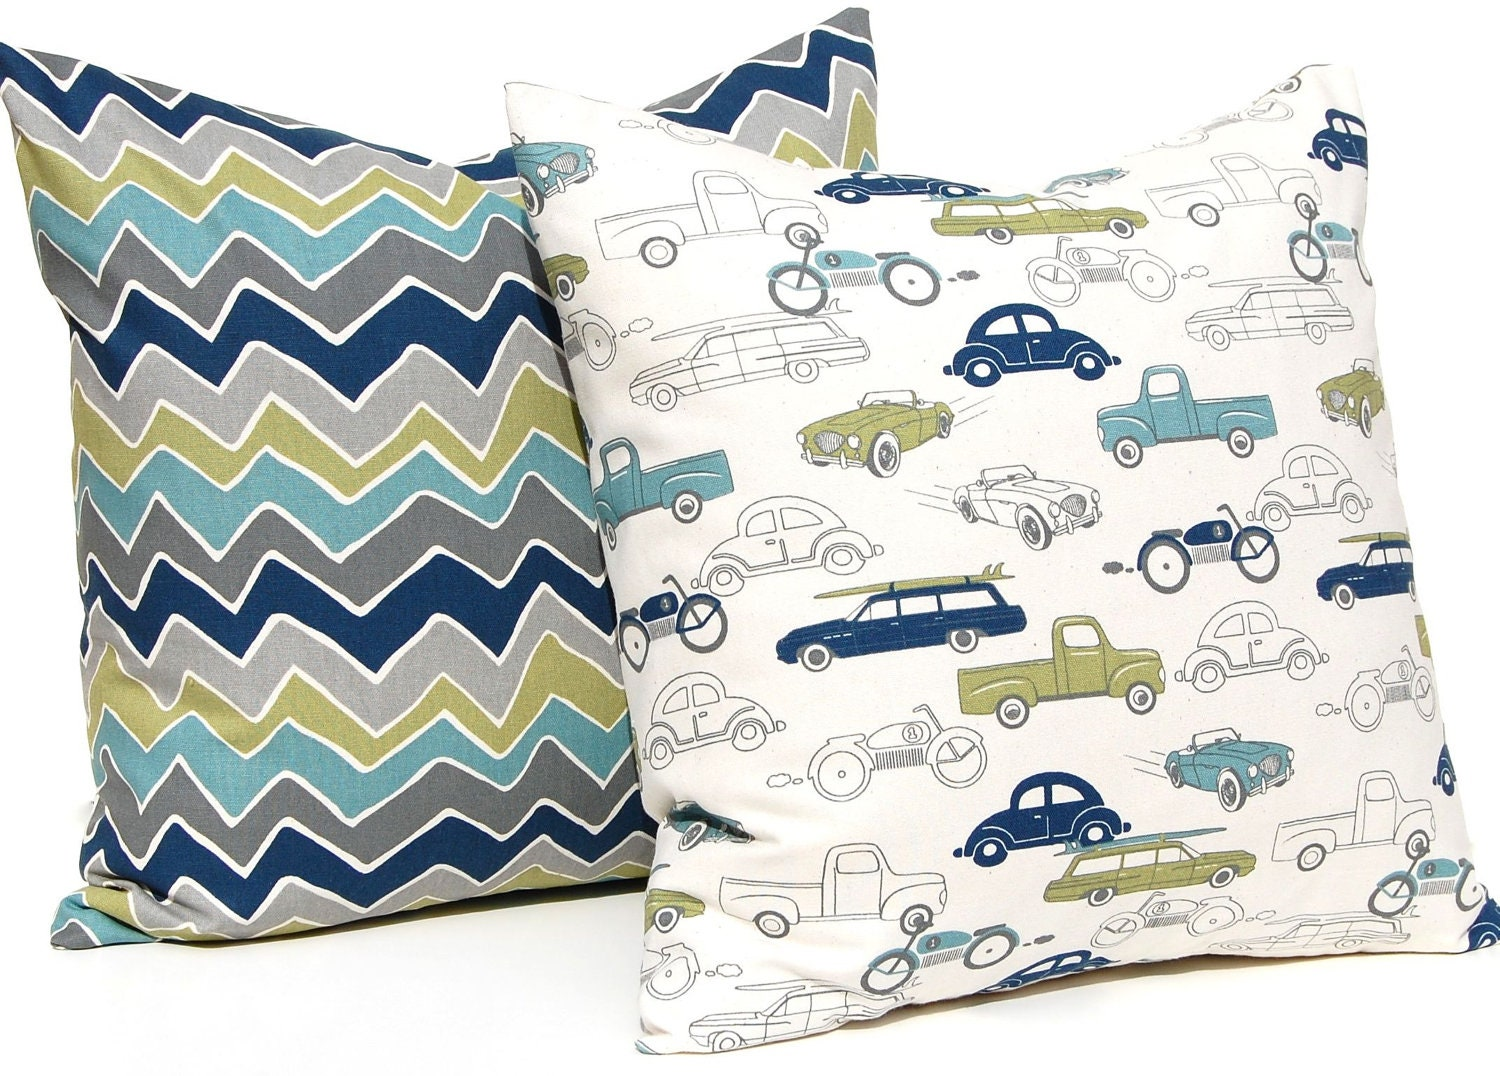 You searched for: boys pillows! Etsy is the home to thousands of handmade, vintage, and one-of-a-kind products and gifts related to your search. No matter what you're looking for or where you are in the world, our global marketplace of sellers can help you find unique and affordable options. Let's get started!